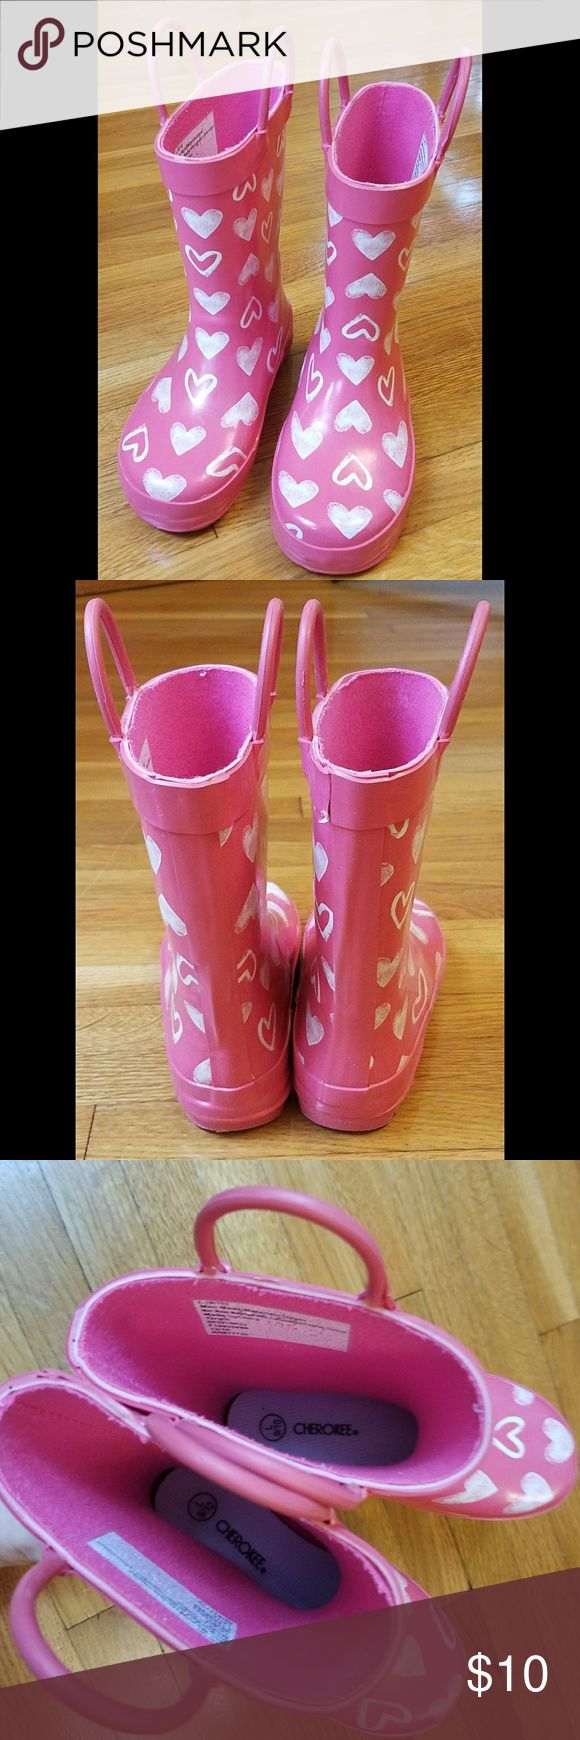 Cute Rain Boots These adorable rain boots are in great condition!   Size: 9/10 Cherokee Shoes Rain & Snow Boots